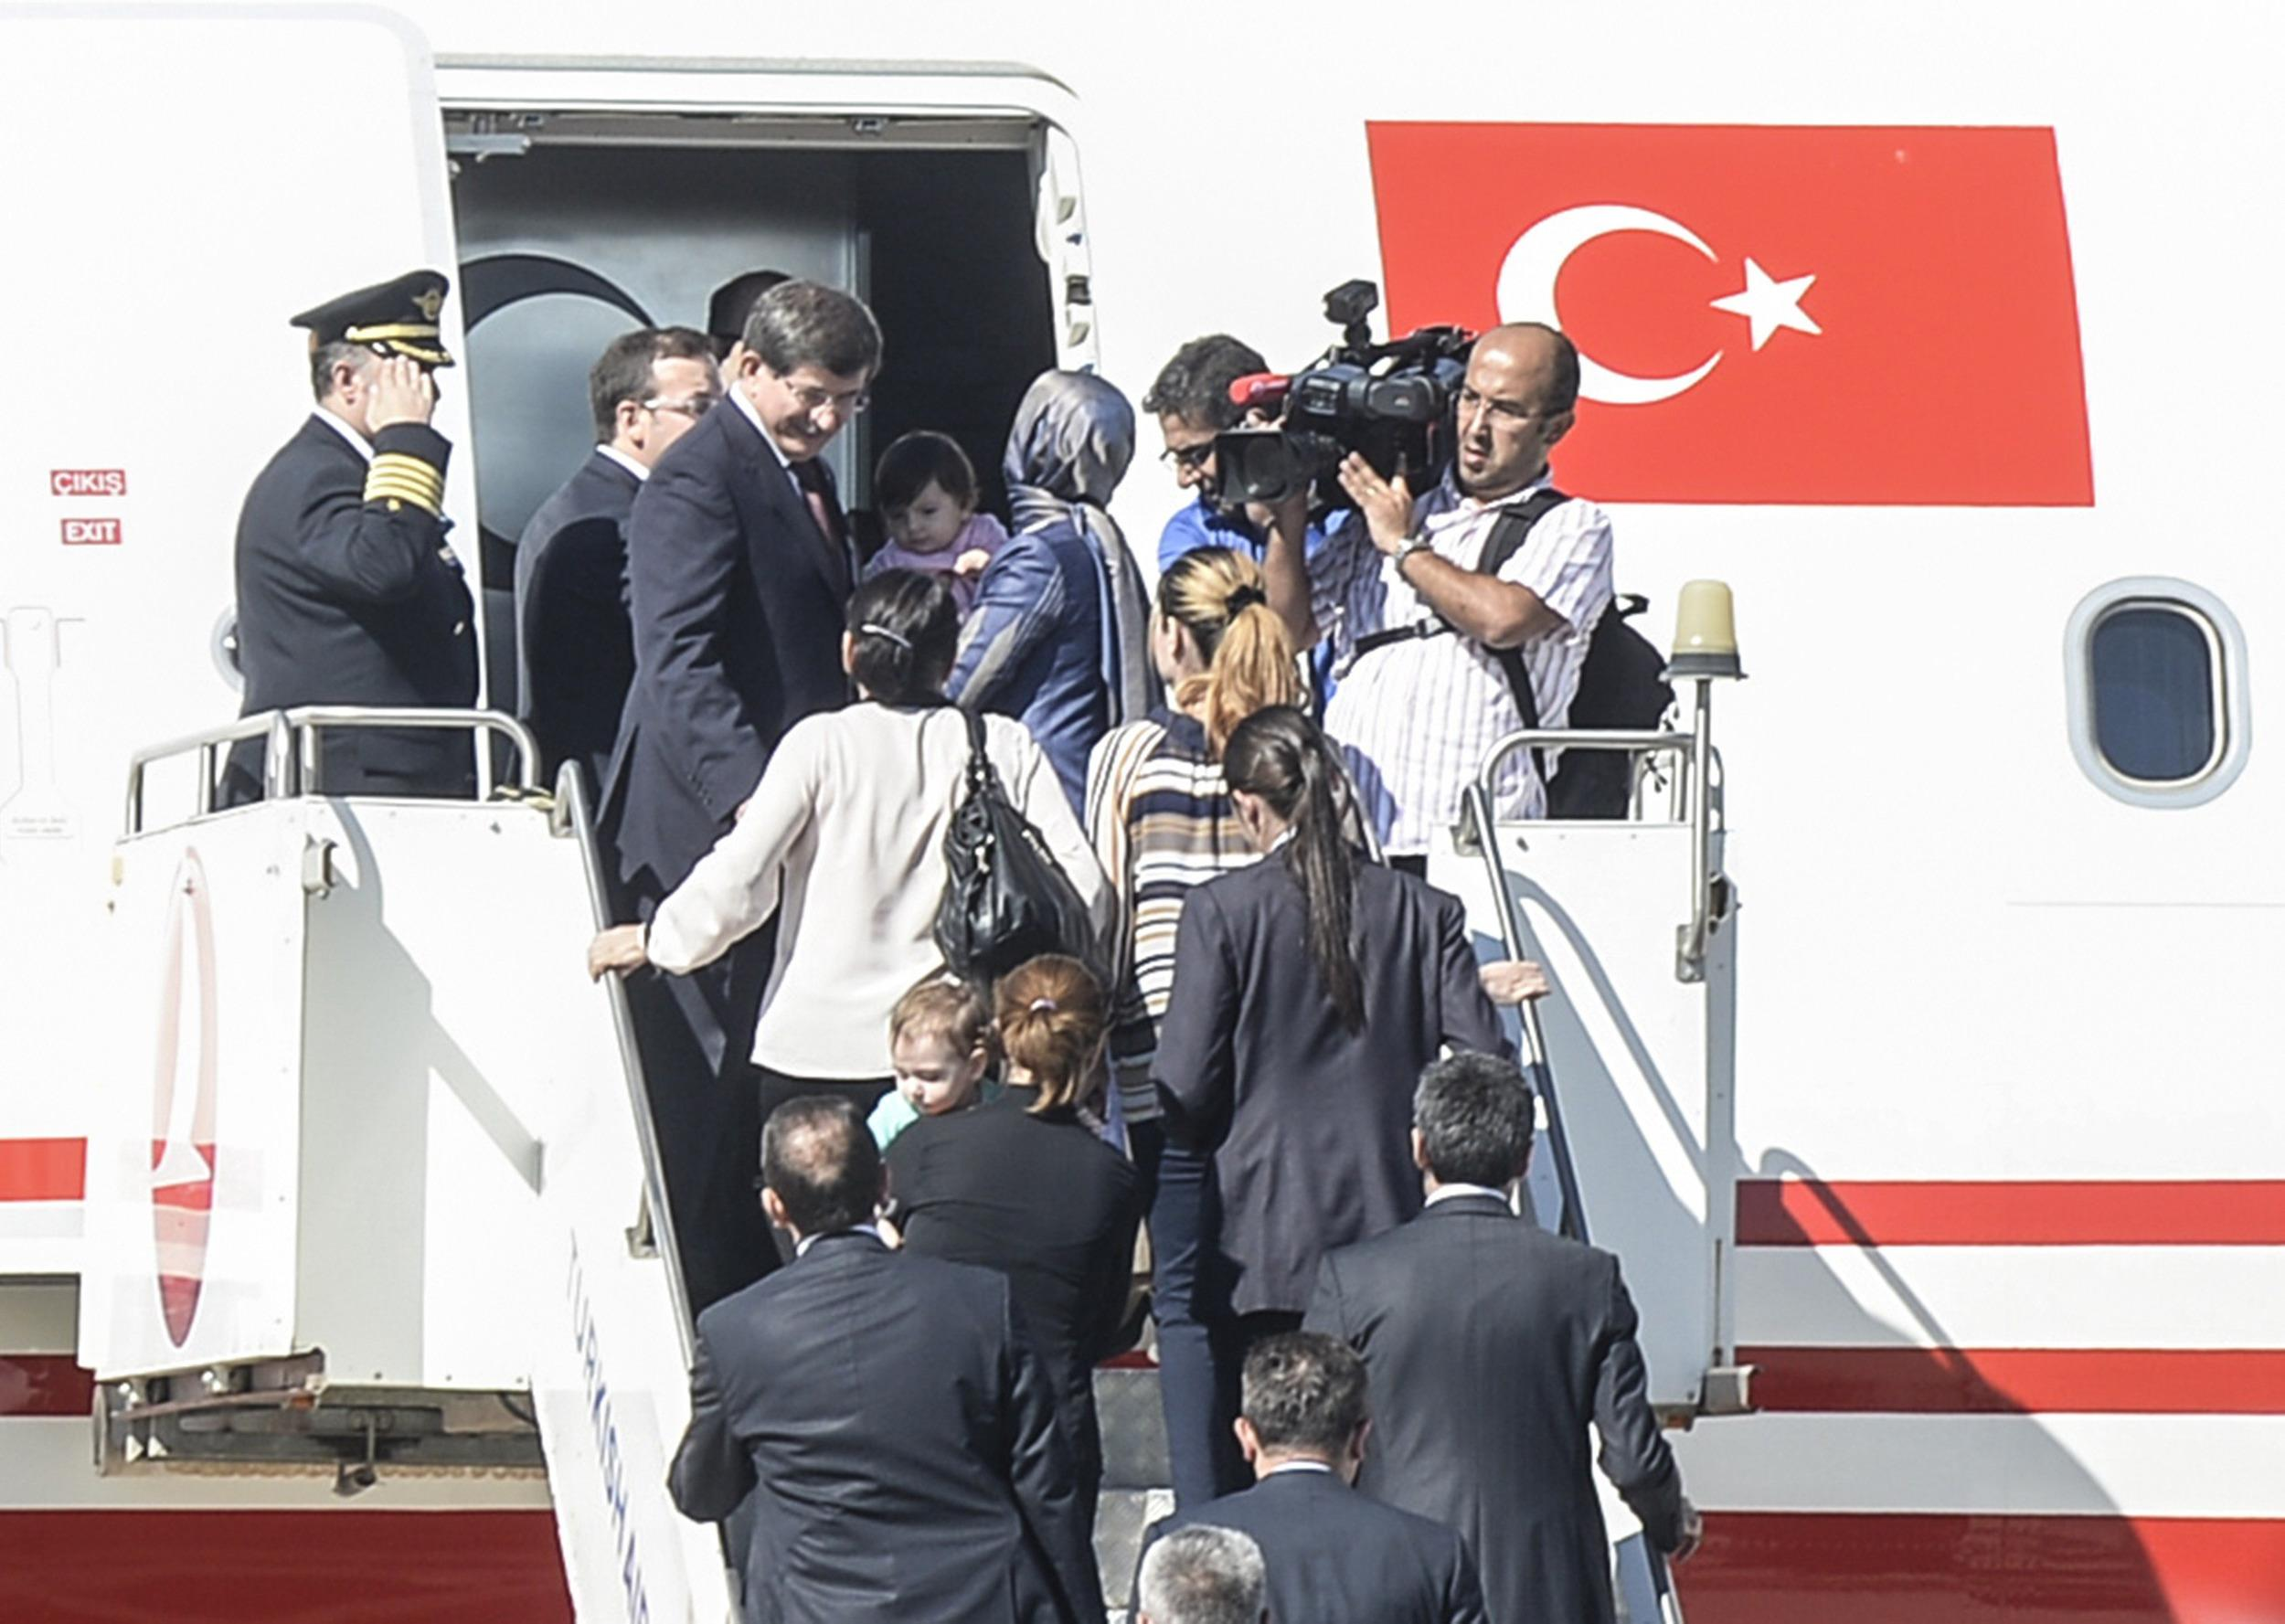 Free at Last: ISIS Militants Release 49 Turkish Hostages